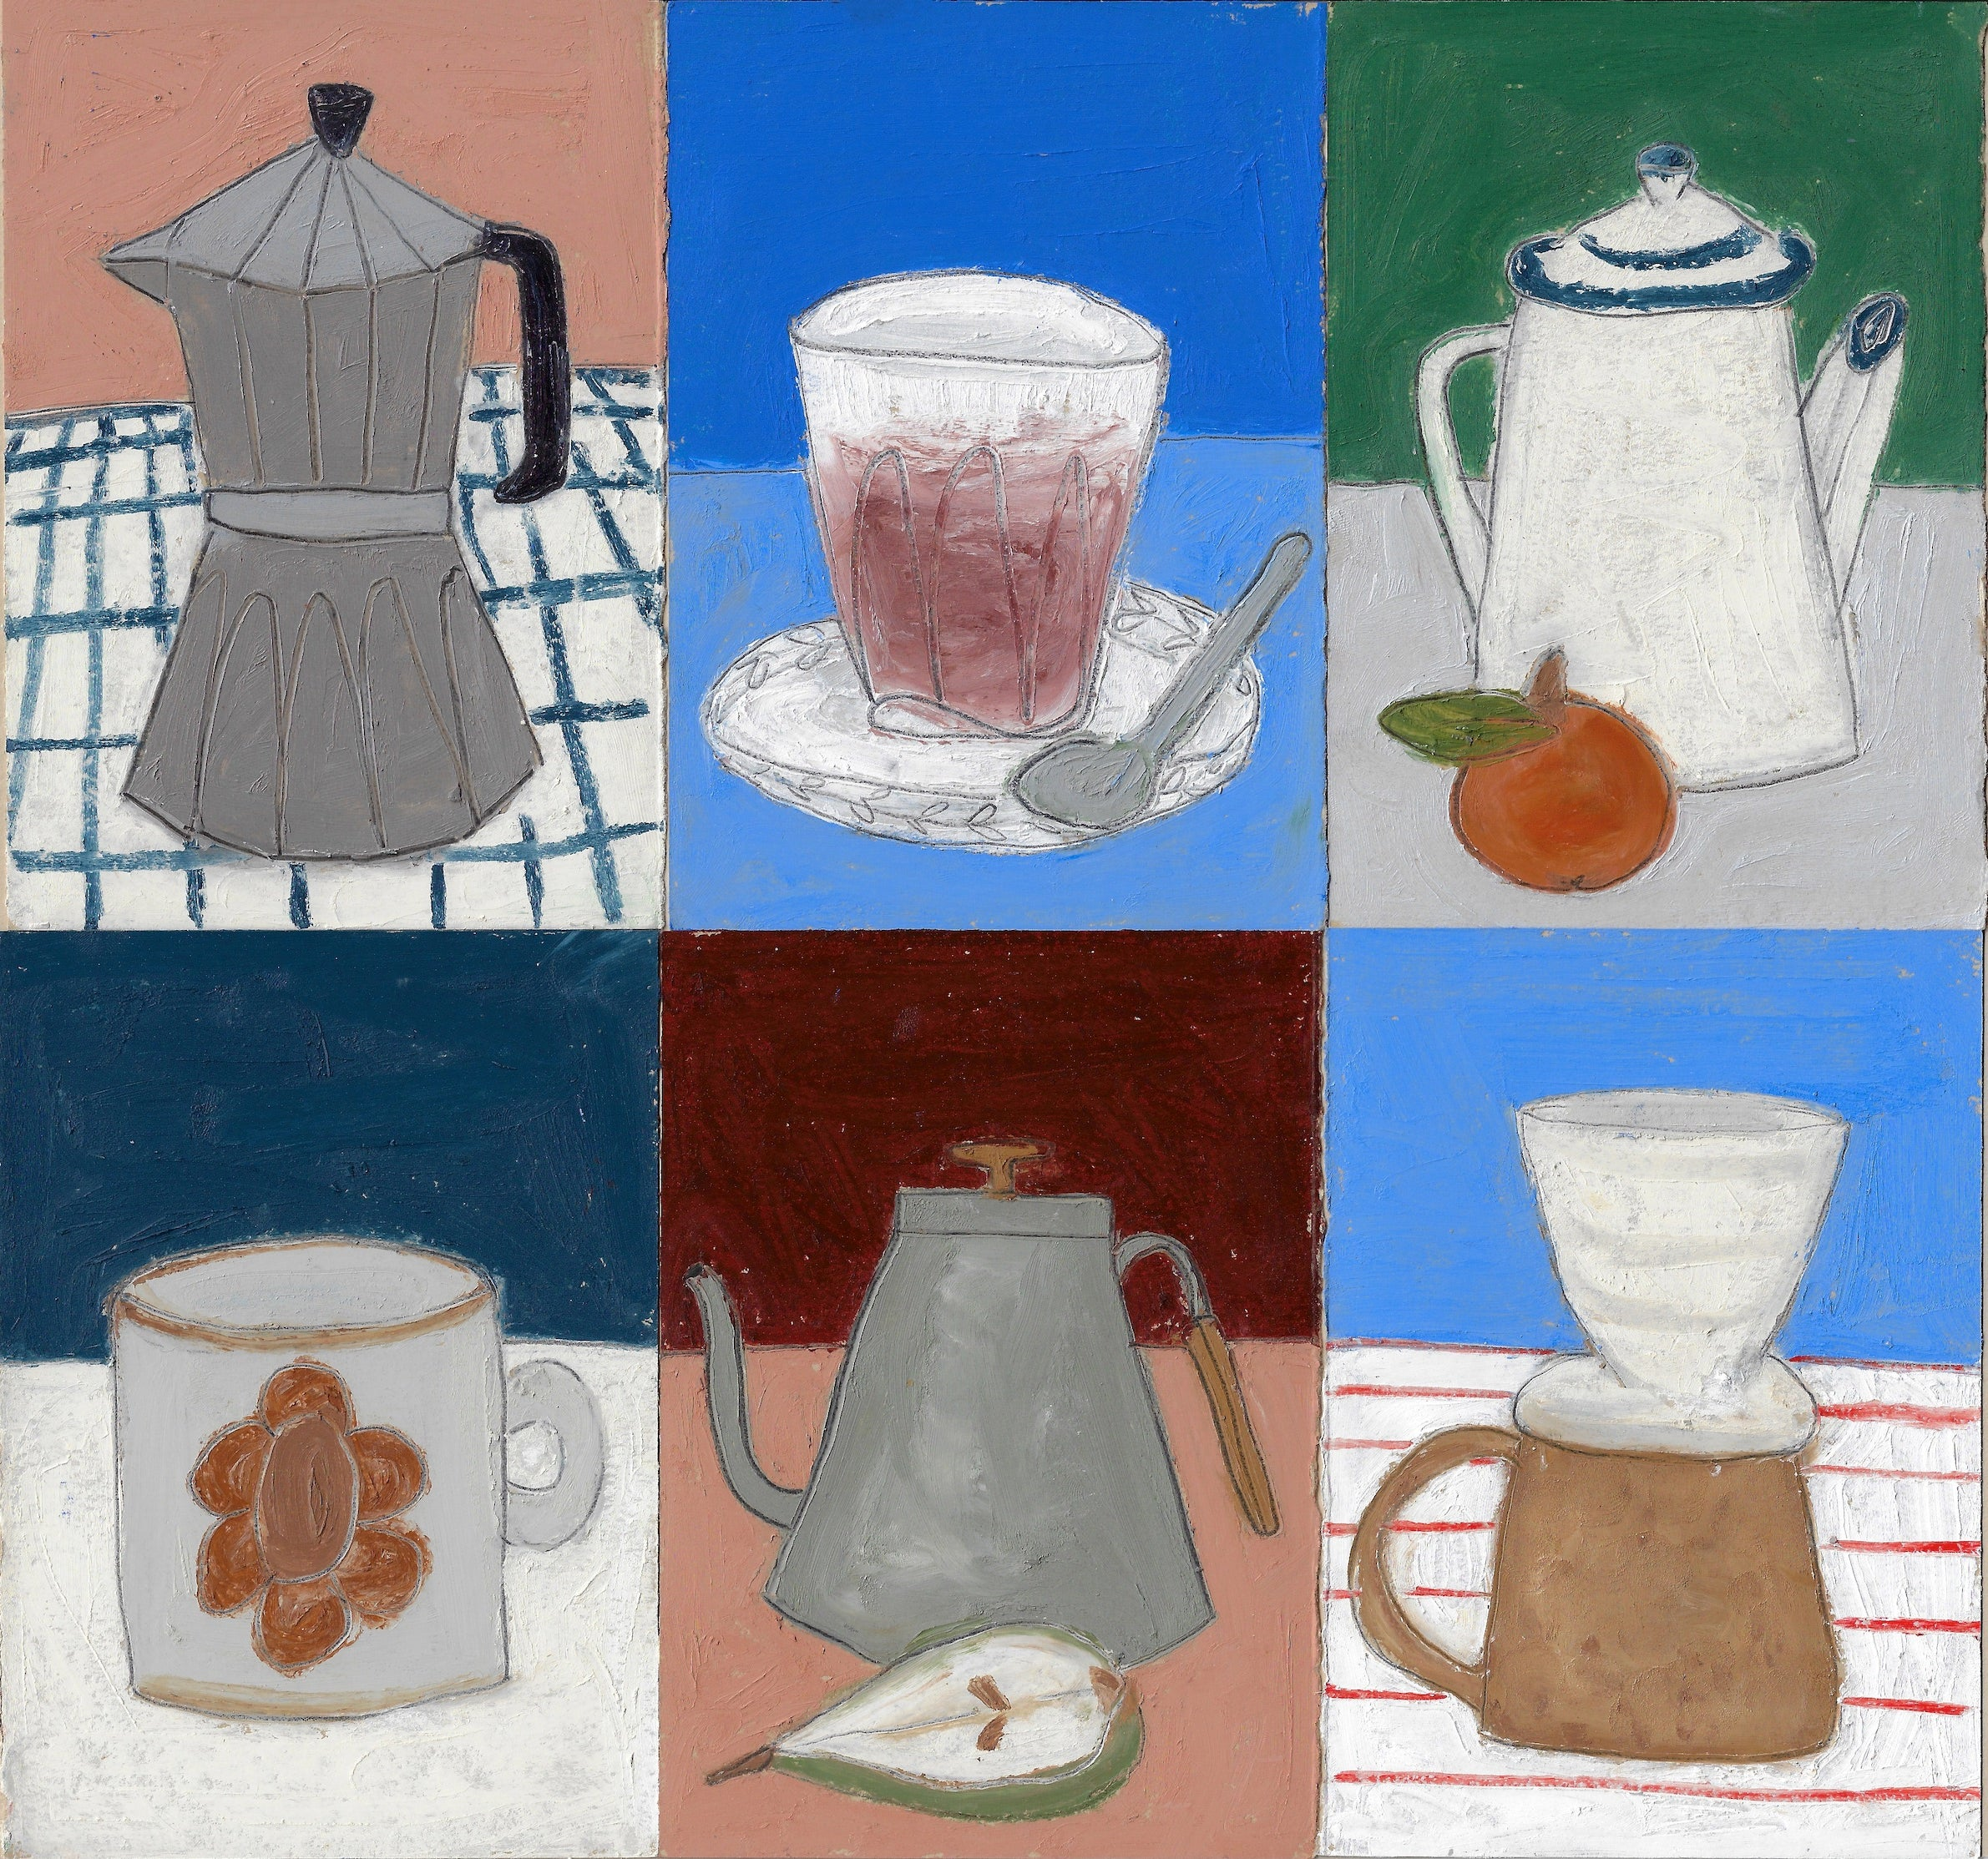 Six paintings of coffee pots, kettles and mugs by Lottie Hampson for Canyon Coffee